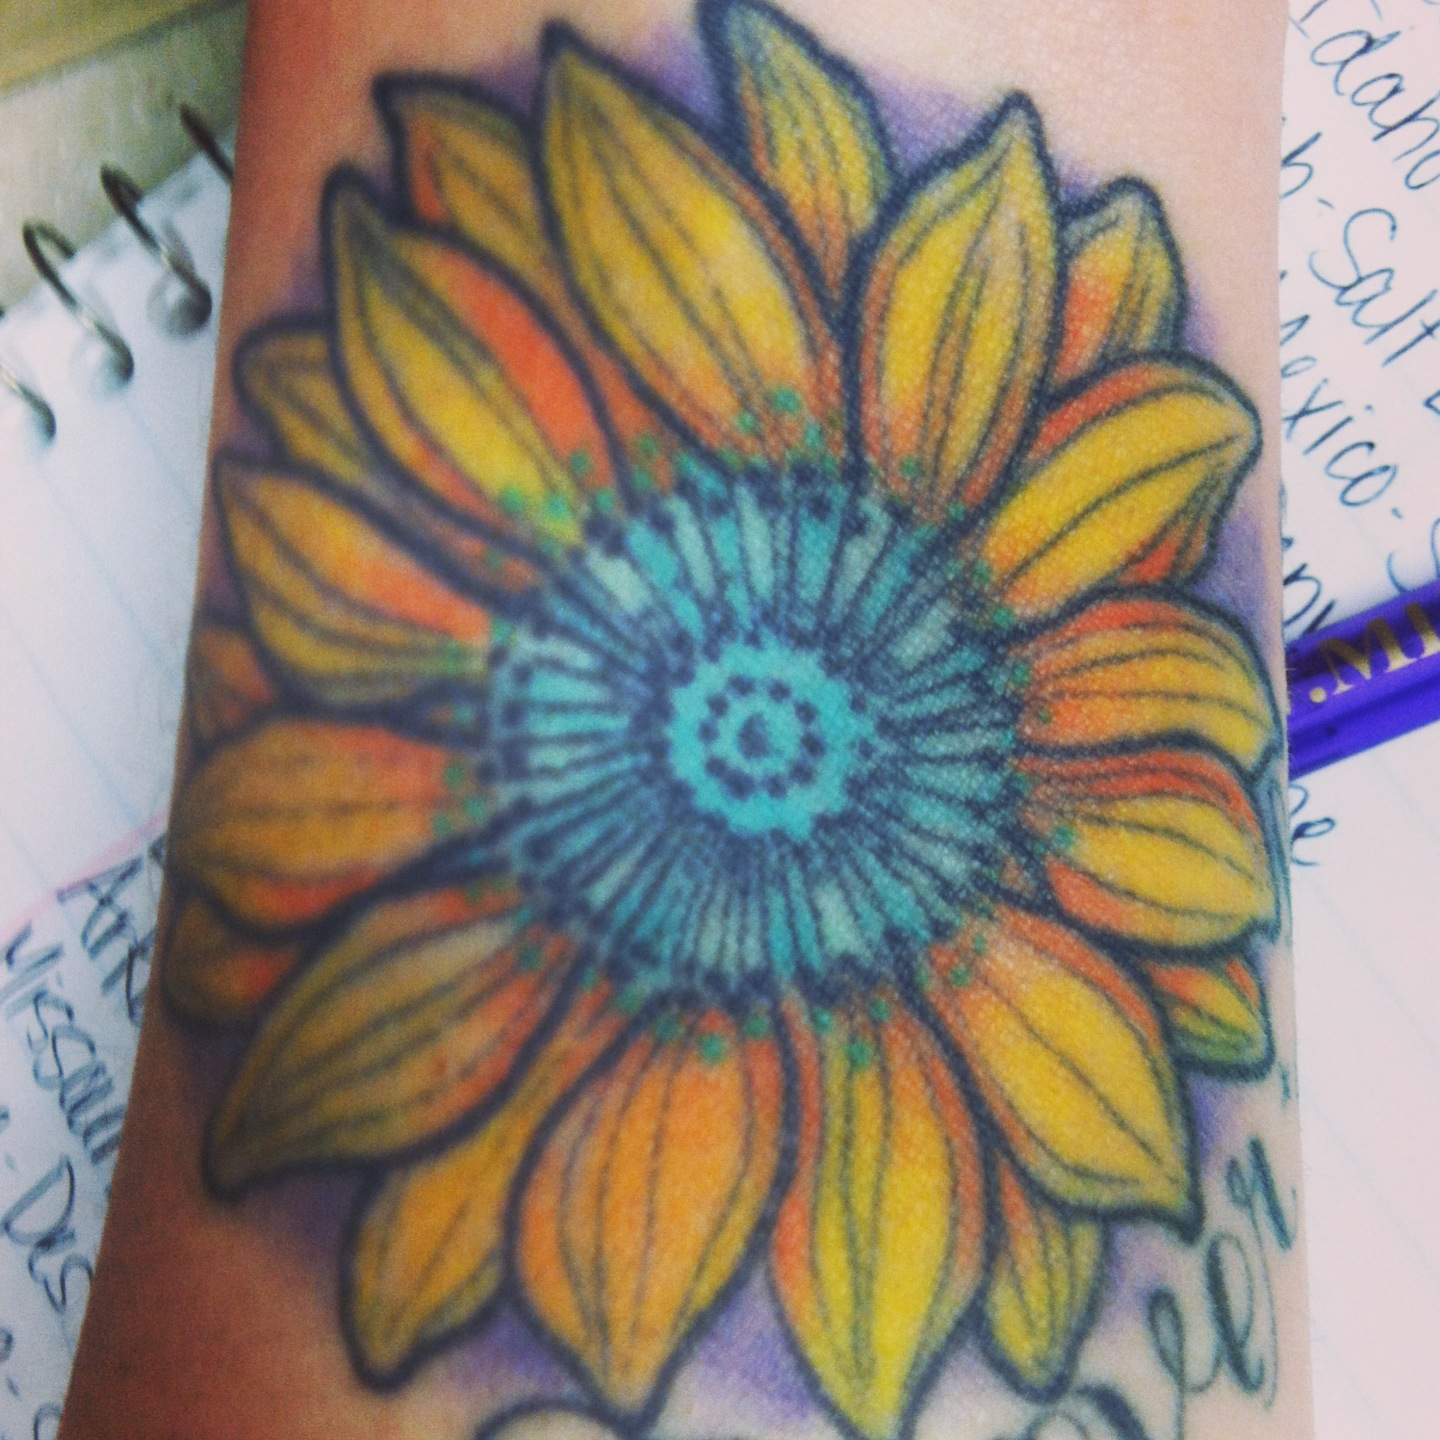 Sunflower Tattoos Designs, Ideas and Meaning | Tattoos For You